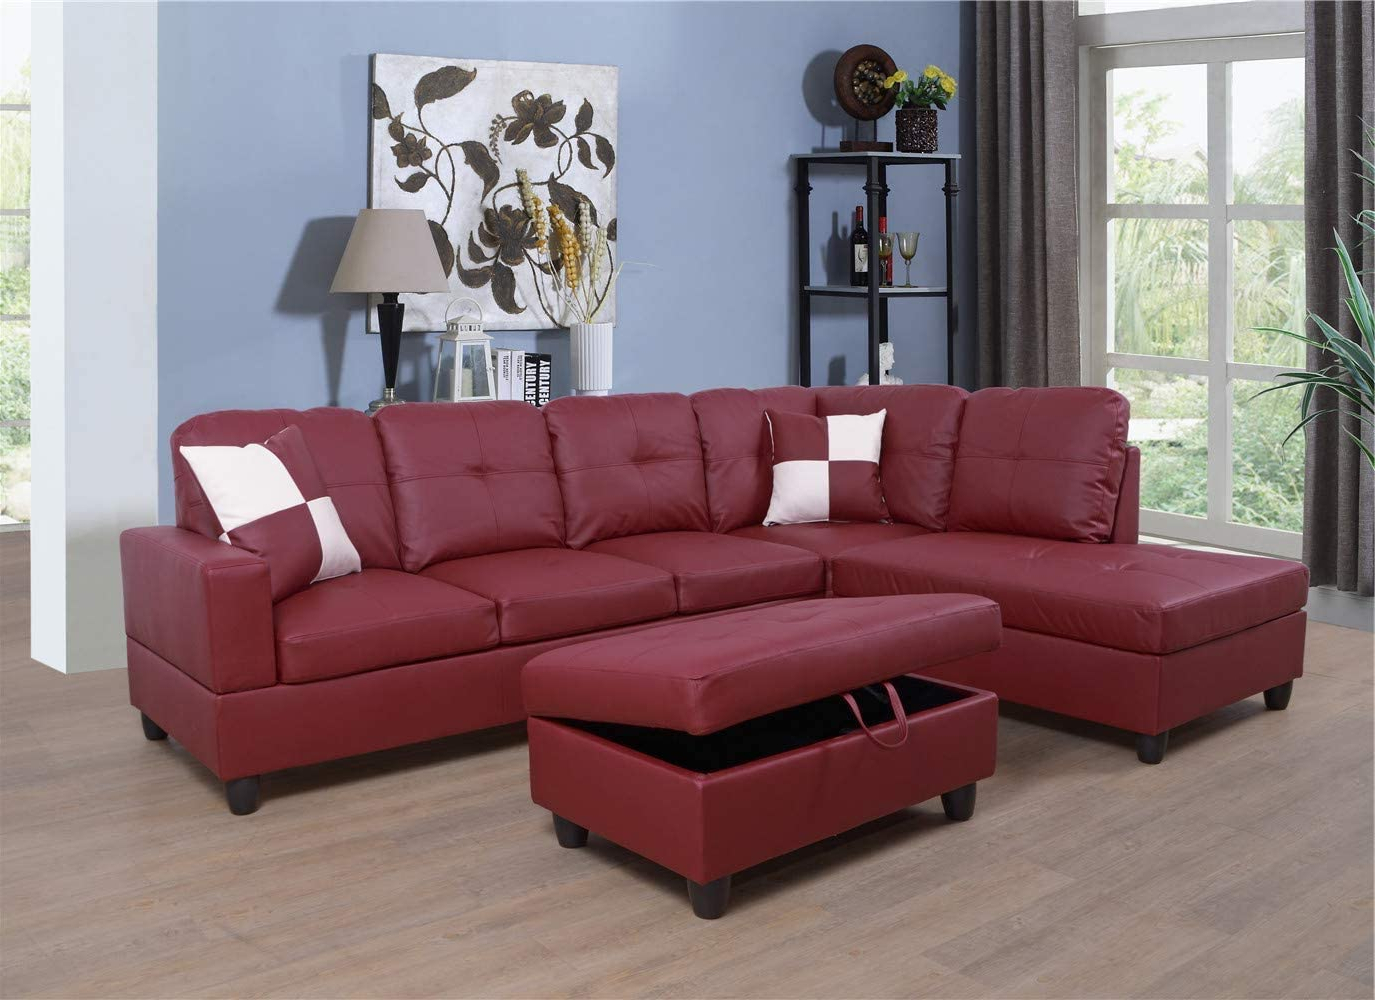 3pc Faux Leather Sectional Sofas Brown With Regard To Widely Used Ponliving Faux Leather 3 Piece Sectional Sofa Couch Set, L (View 4 of 20)